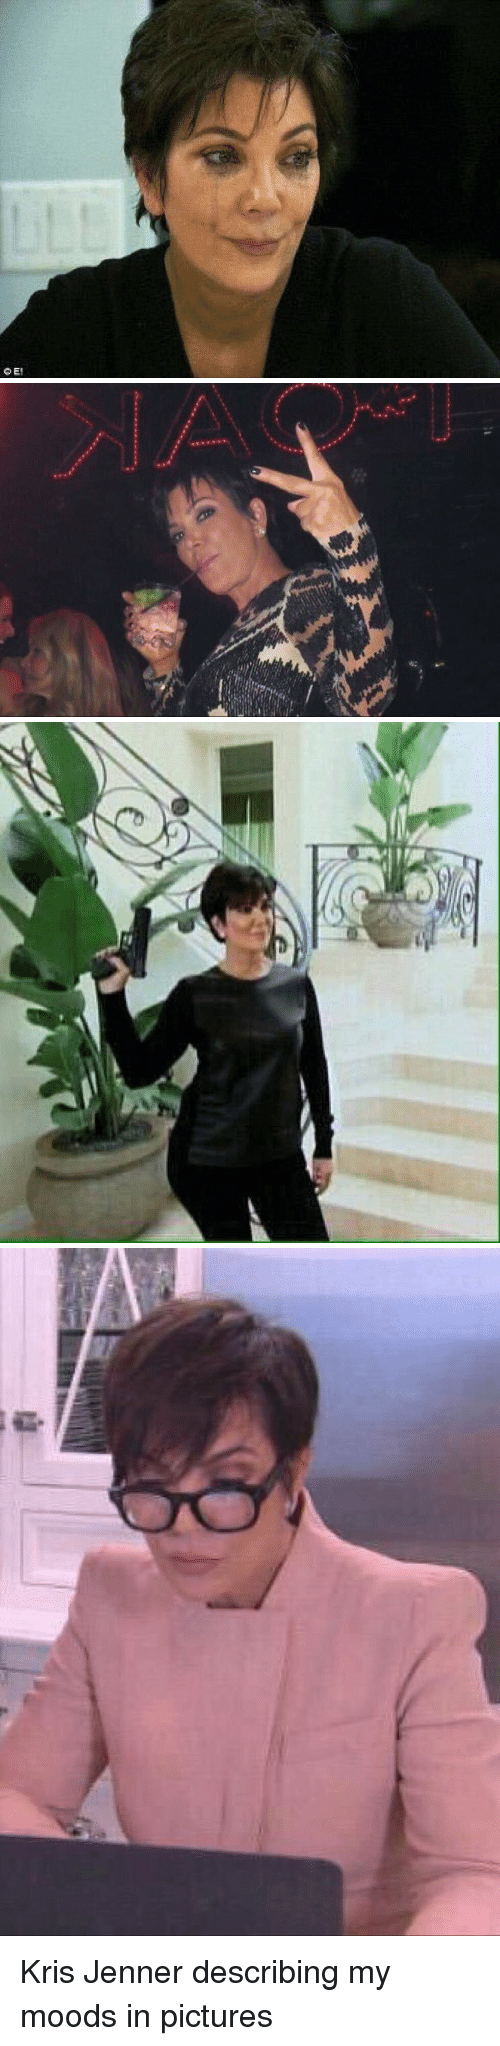 Kris Jenner, Memes, and 🤖: ao Kris Jenner describing my moods in pictures